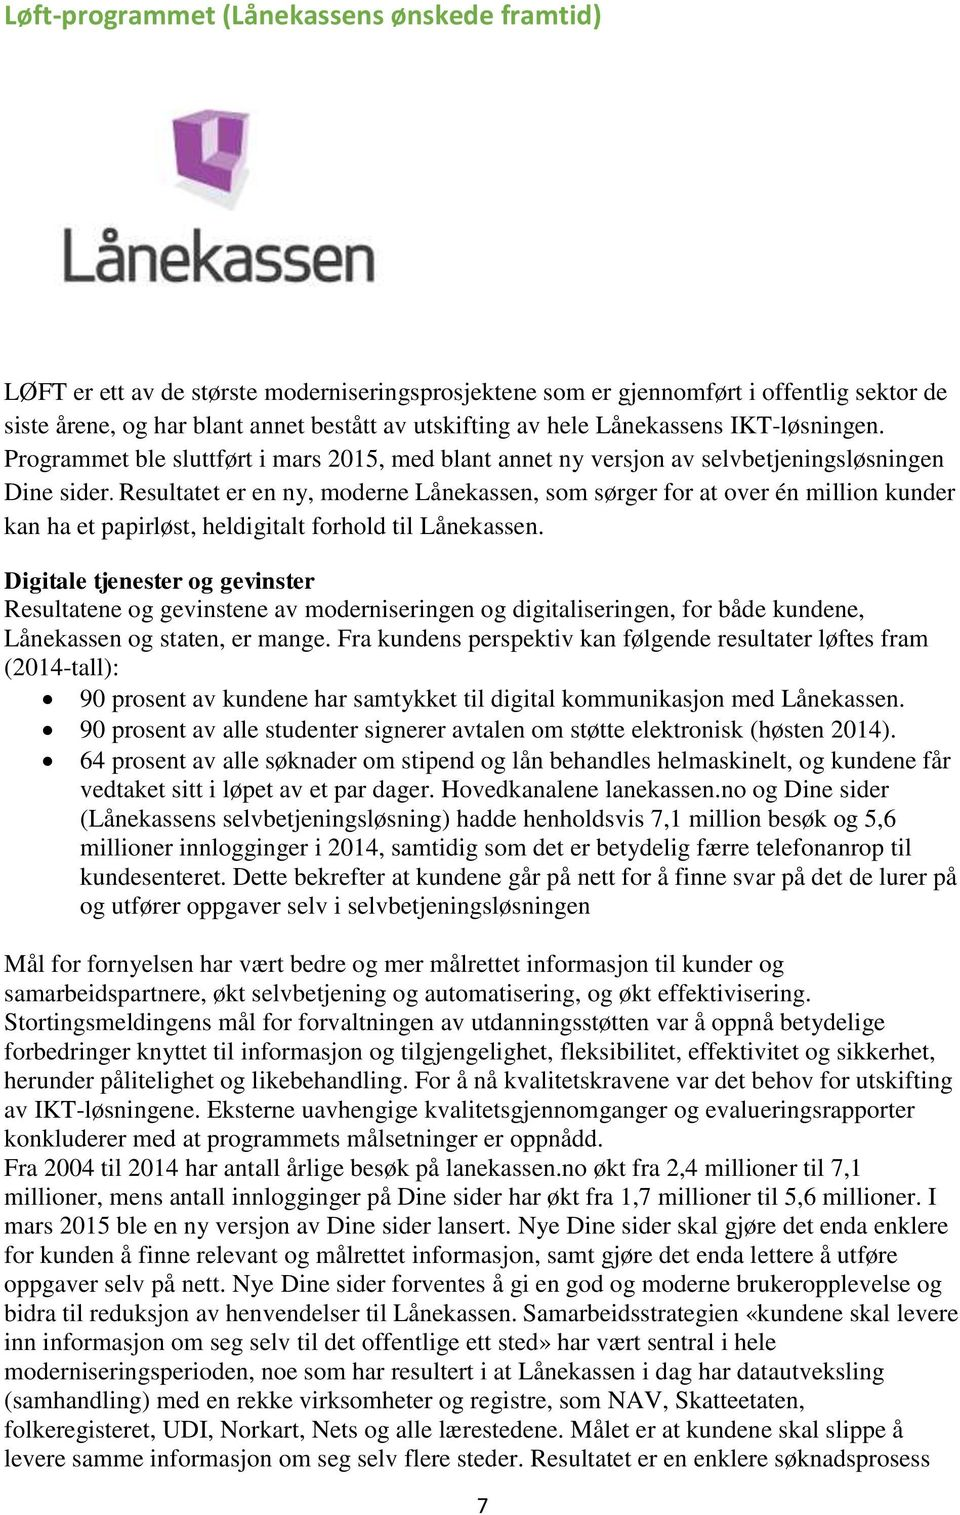 Resultatet er en ny, moderne Lånekassen, som sørger for at over én million kunder kan ha et papirløst, heldigitalt forhold til Lånekassen.